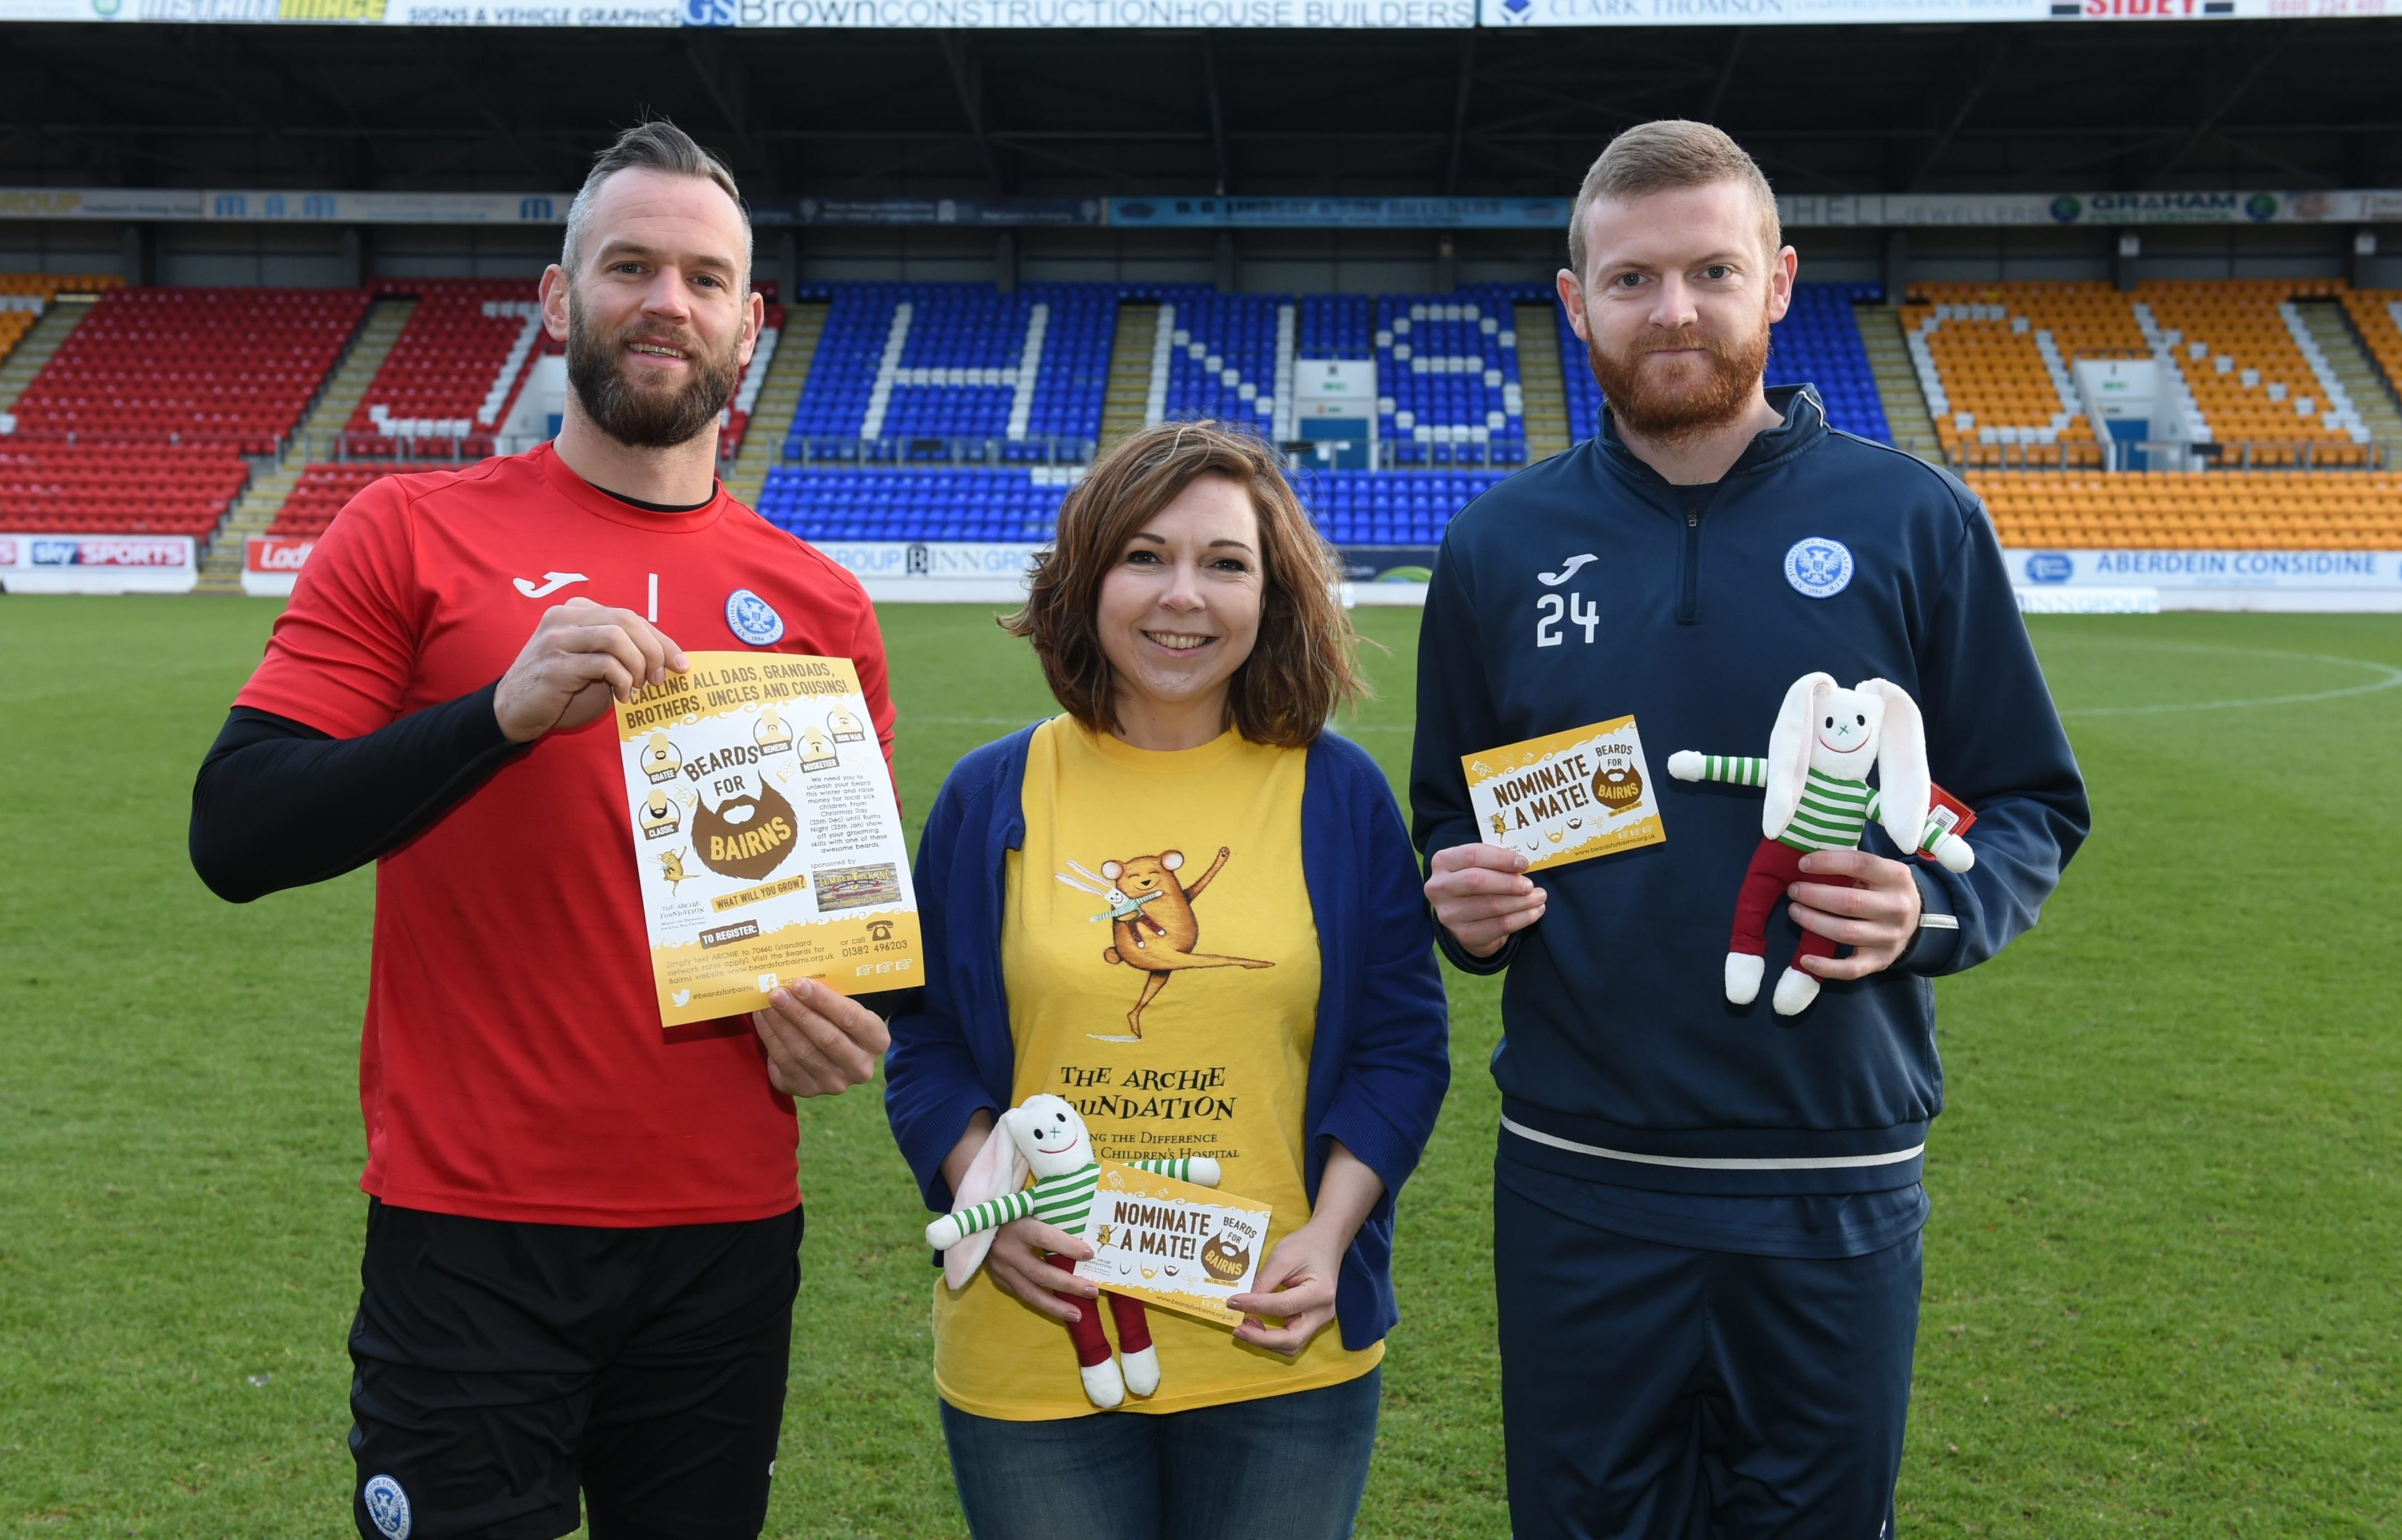 St Johnstone players Alan Mannus and Brian Easton with Emma White, The ARCHIE Foundation head of fundraising.